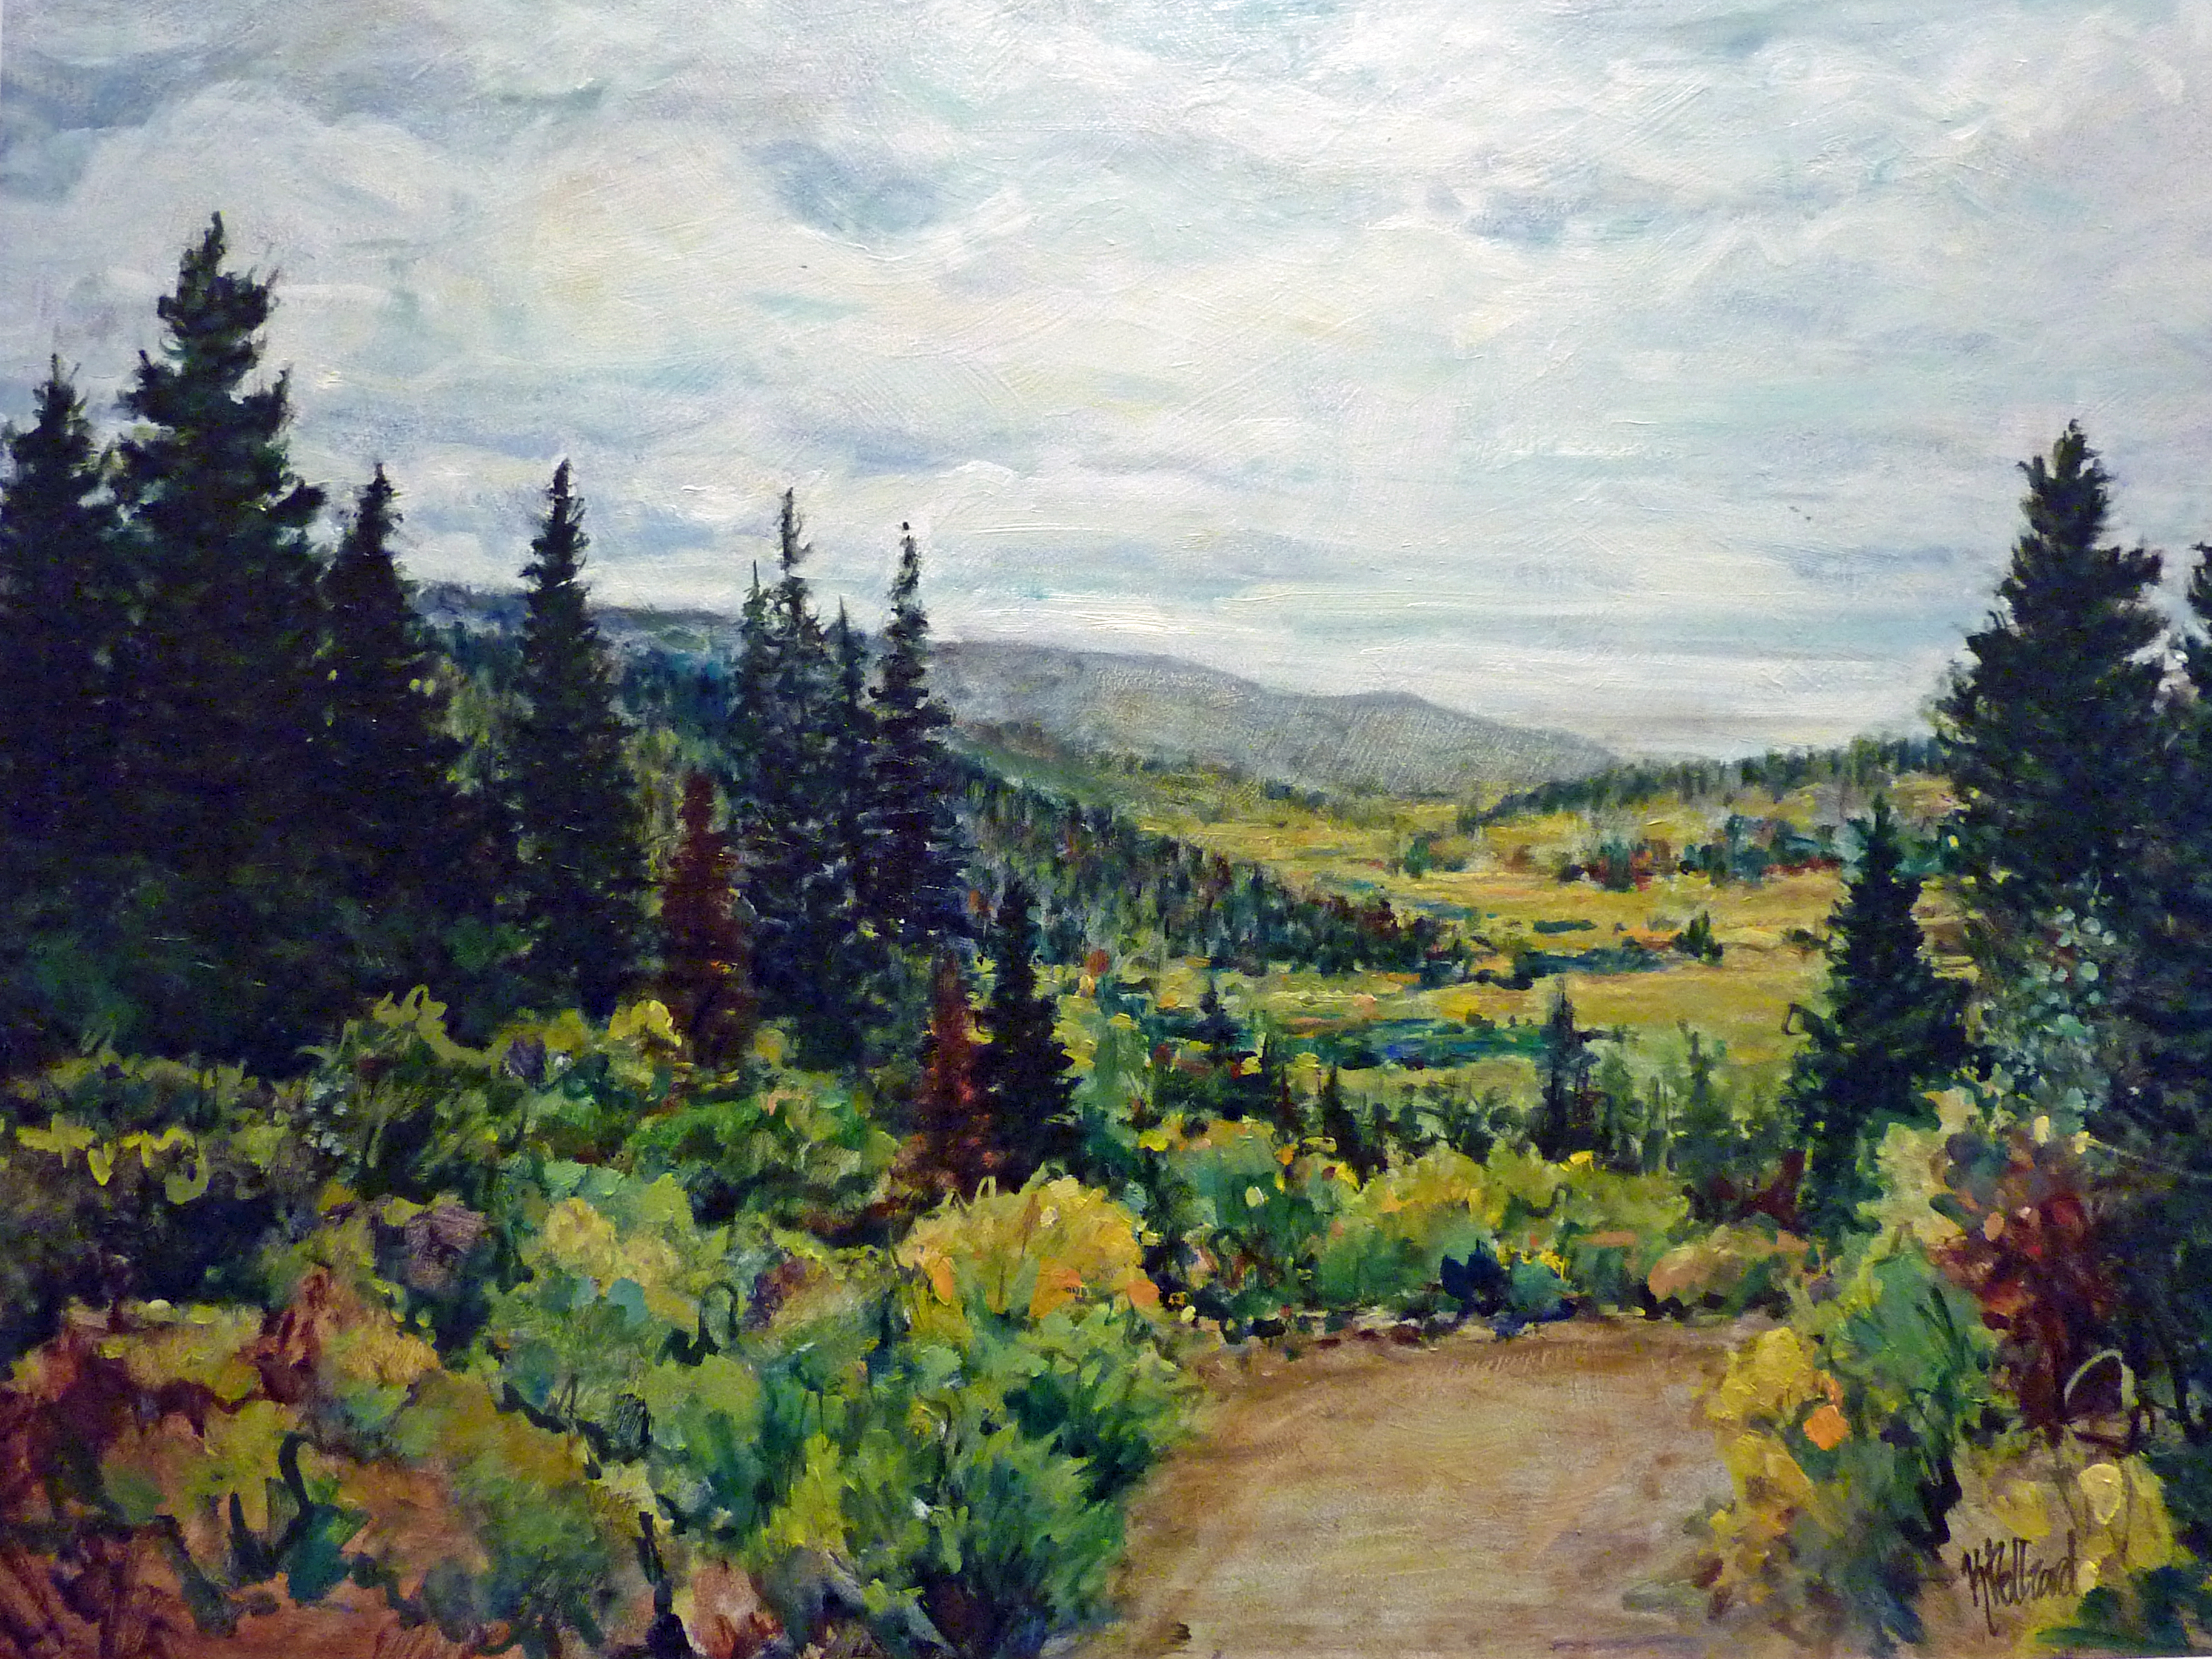 Road 1100 | Landscapes of Western Canada | Artist | Painter Kim Pollard | Canada | 100 Mile House